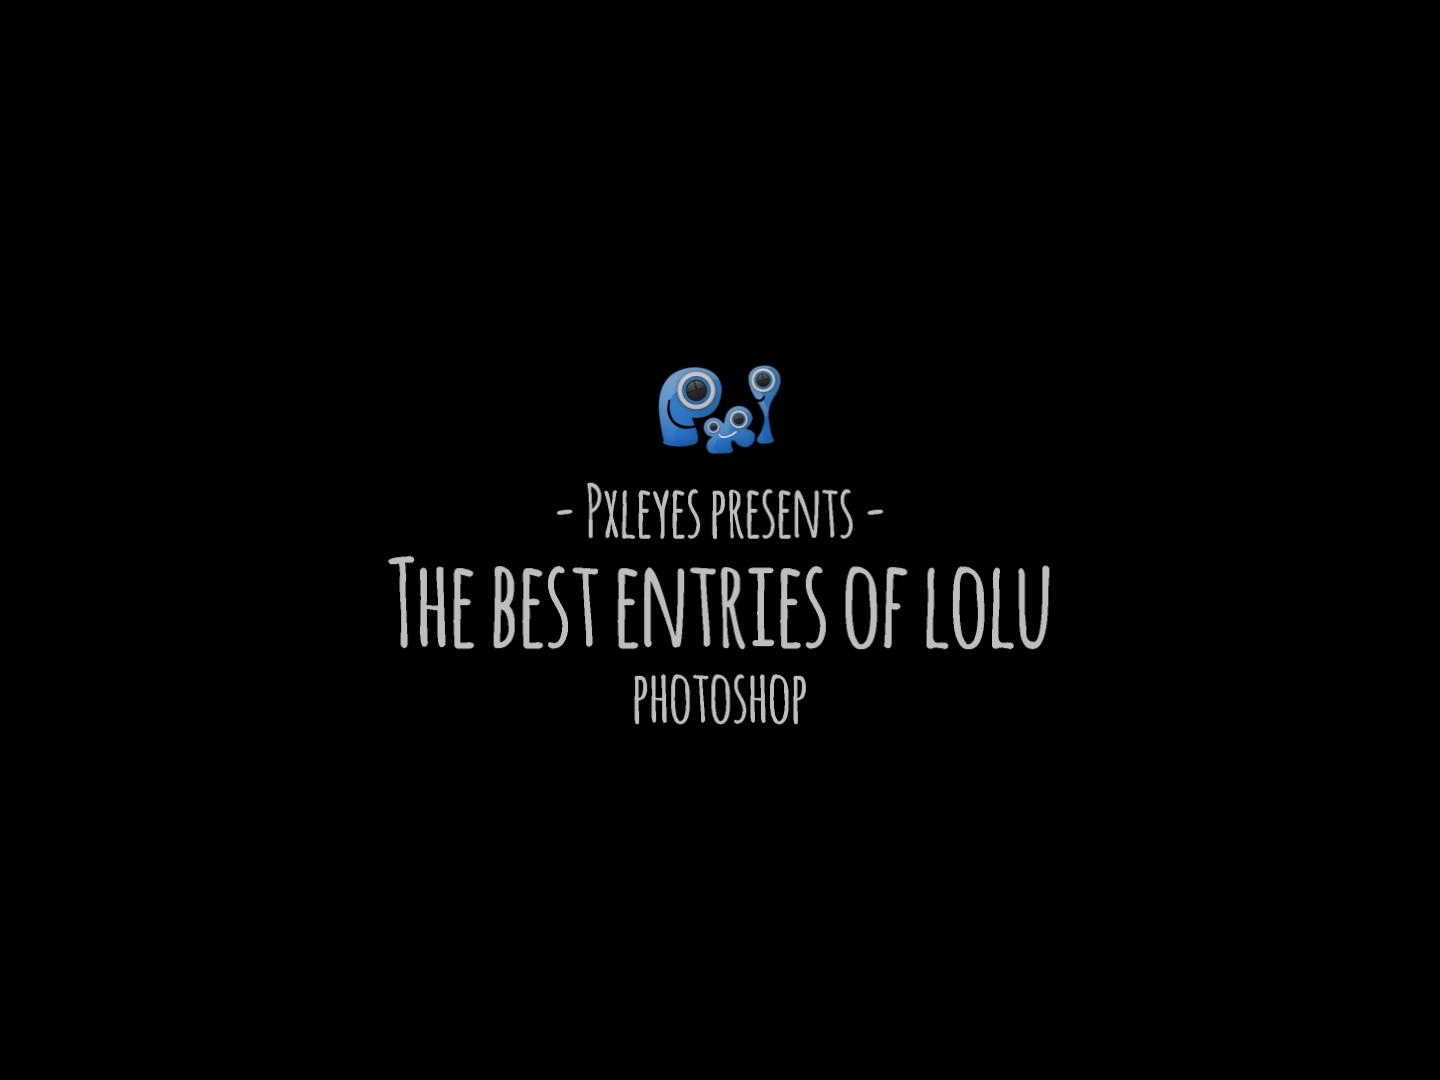 The best entries of lolu